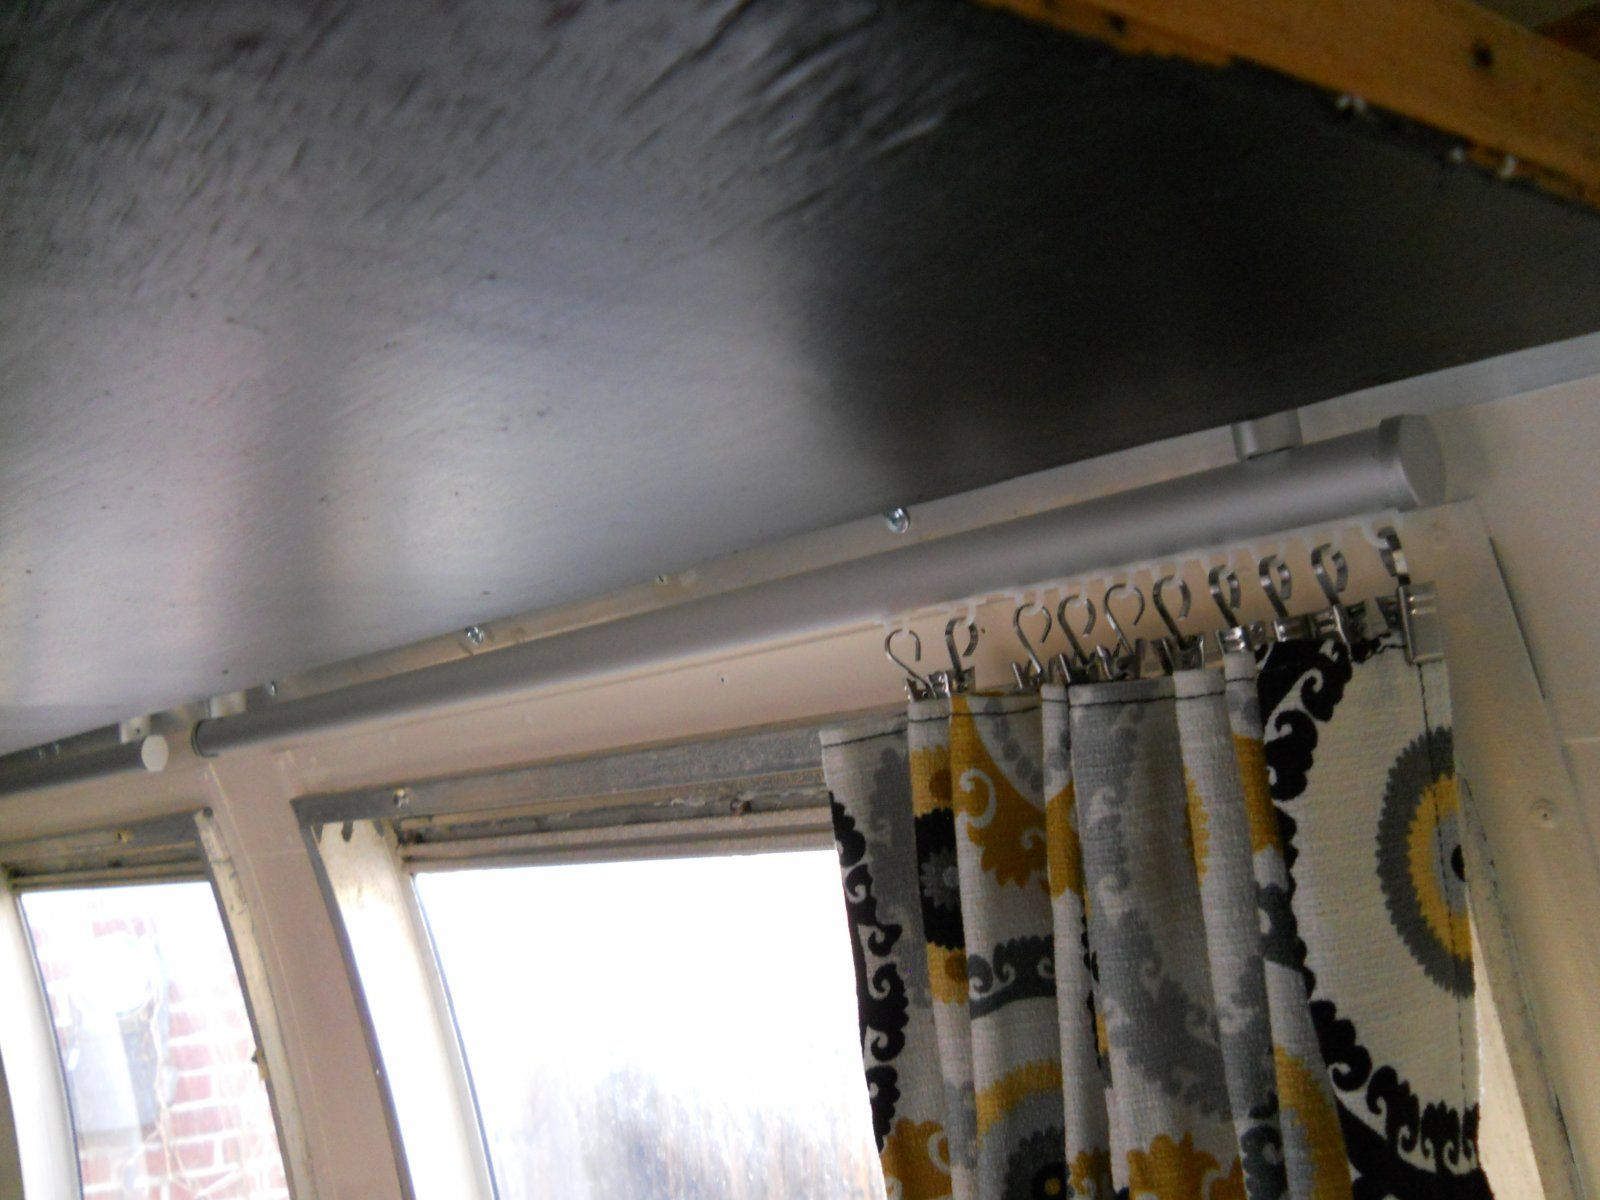 Ikea Curtain Tracks Work Great Airstream Forums Ikea Curtains